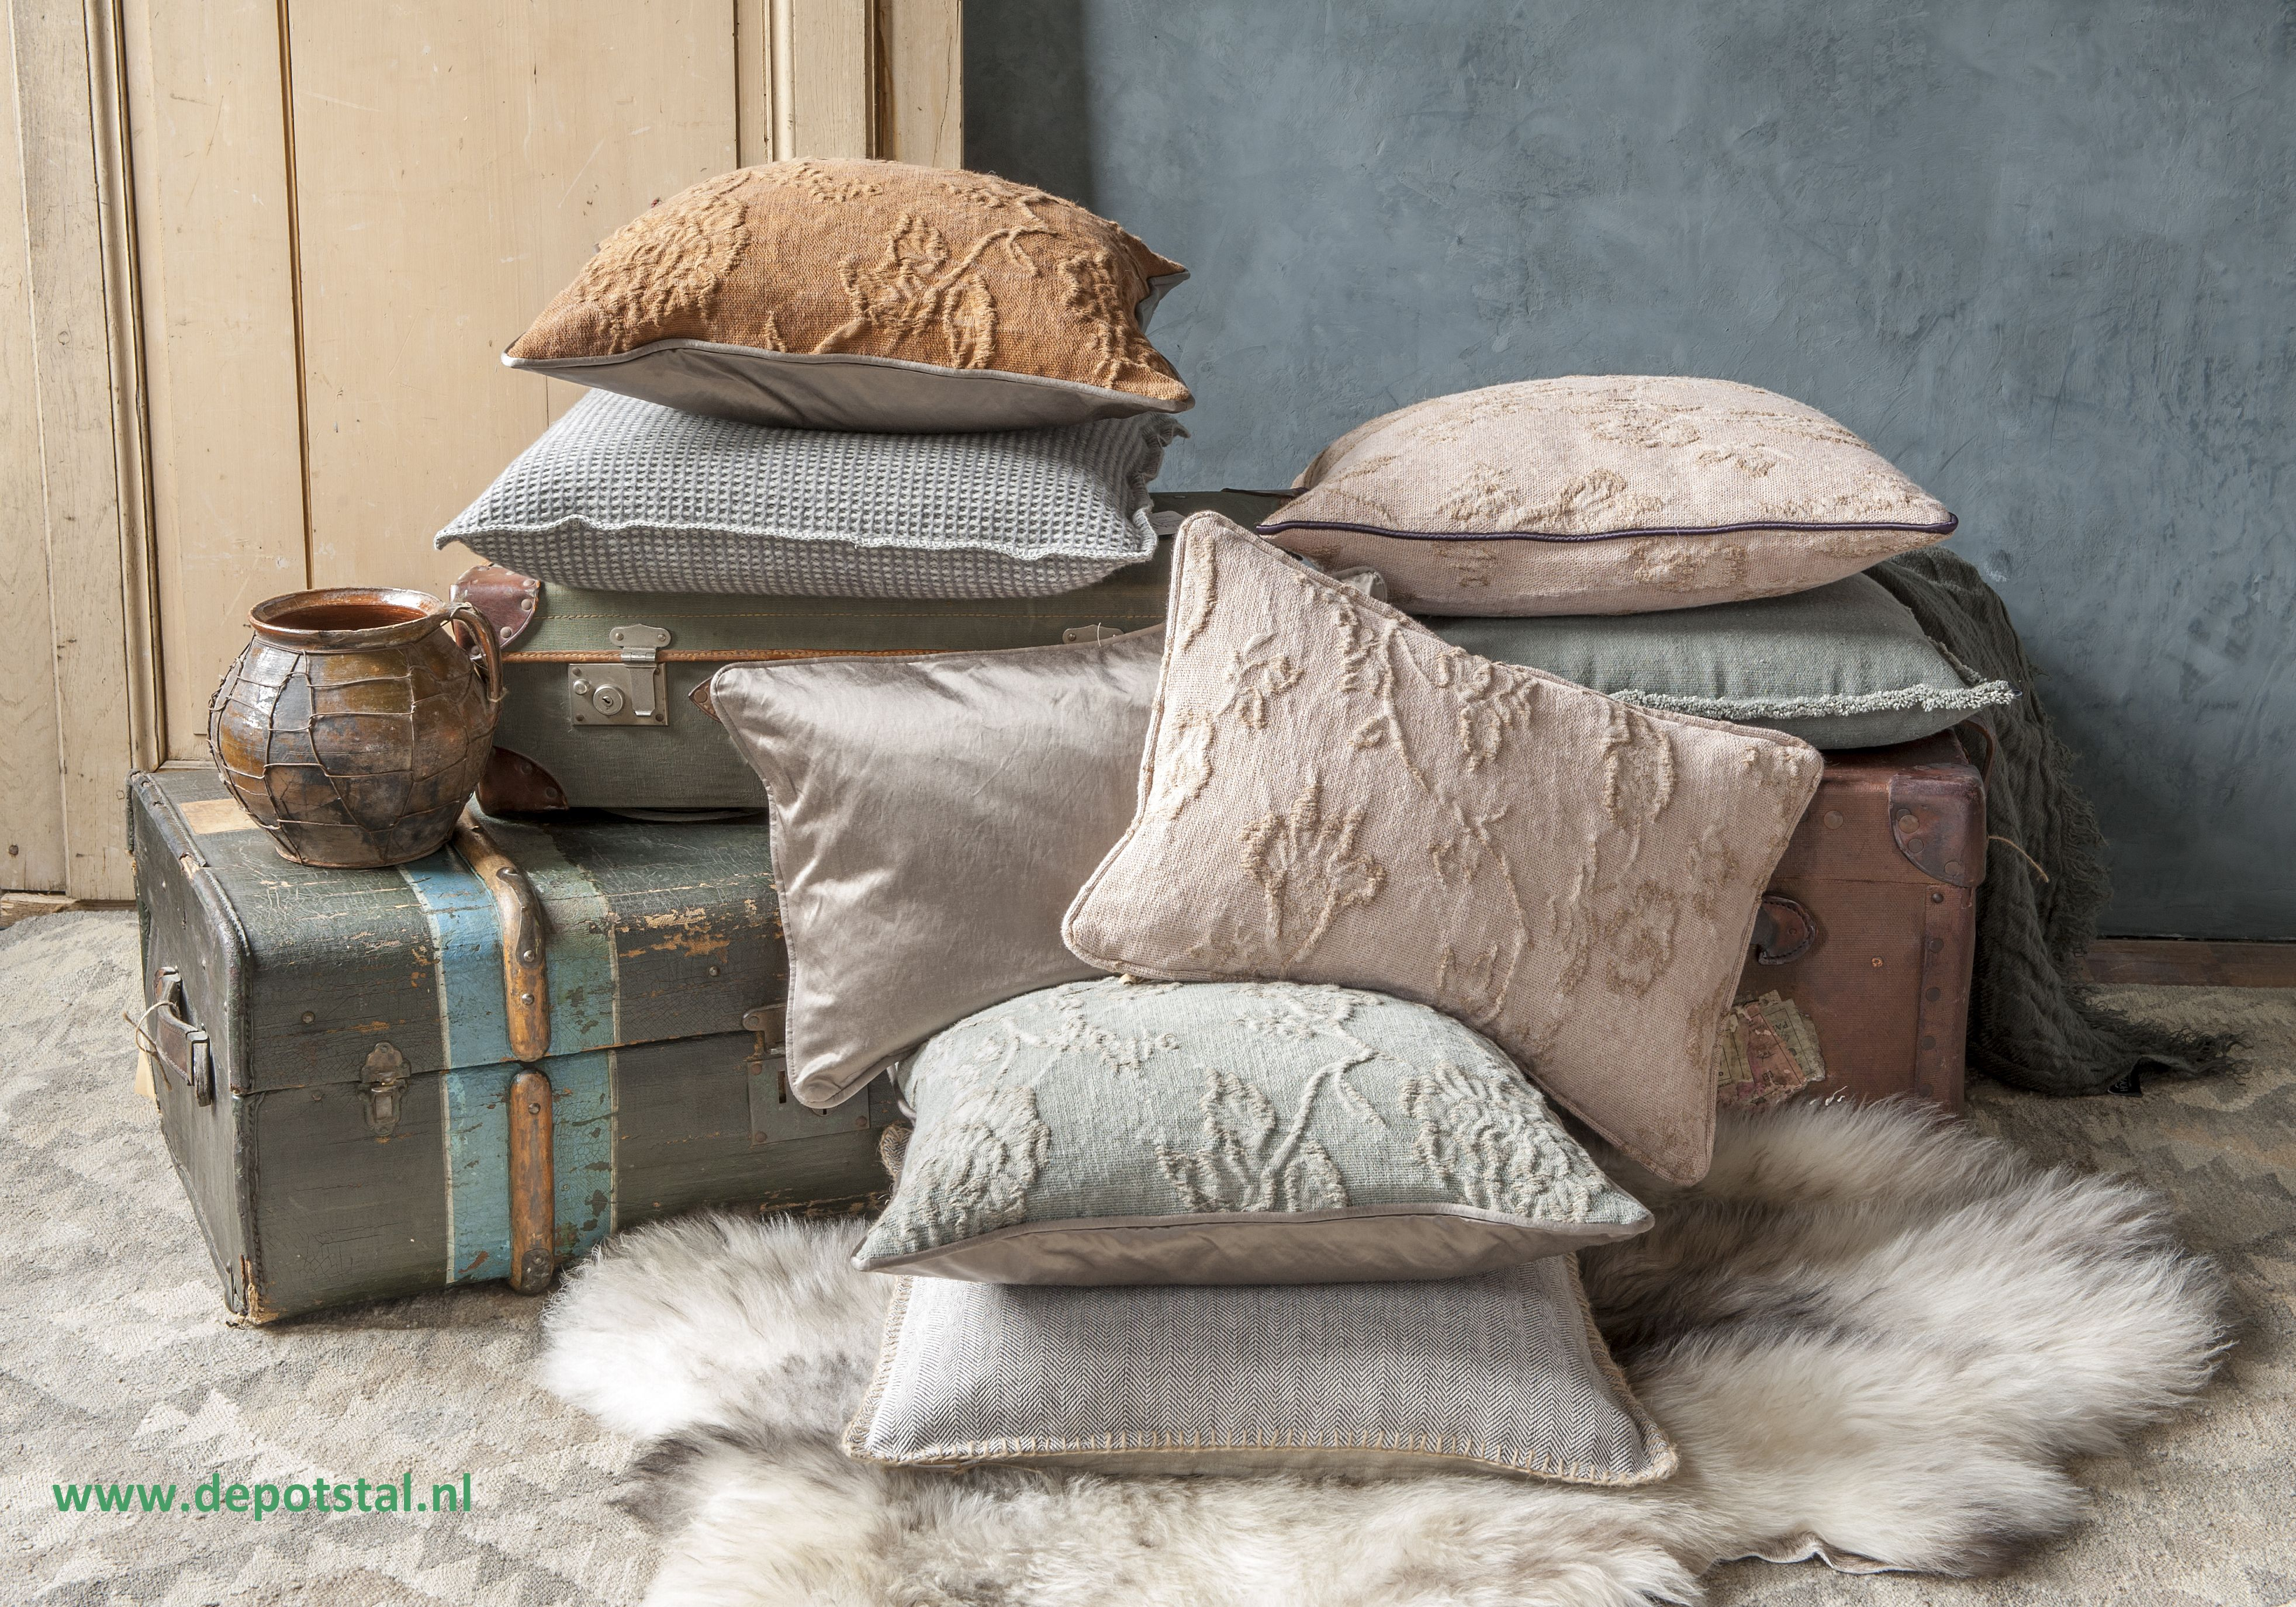 Pillows made of beautiful fabrics picture by Joyce Vloet